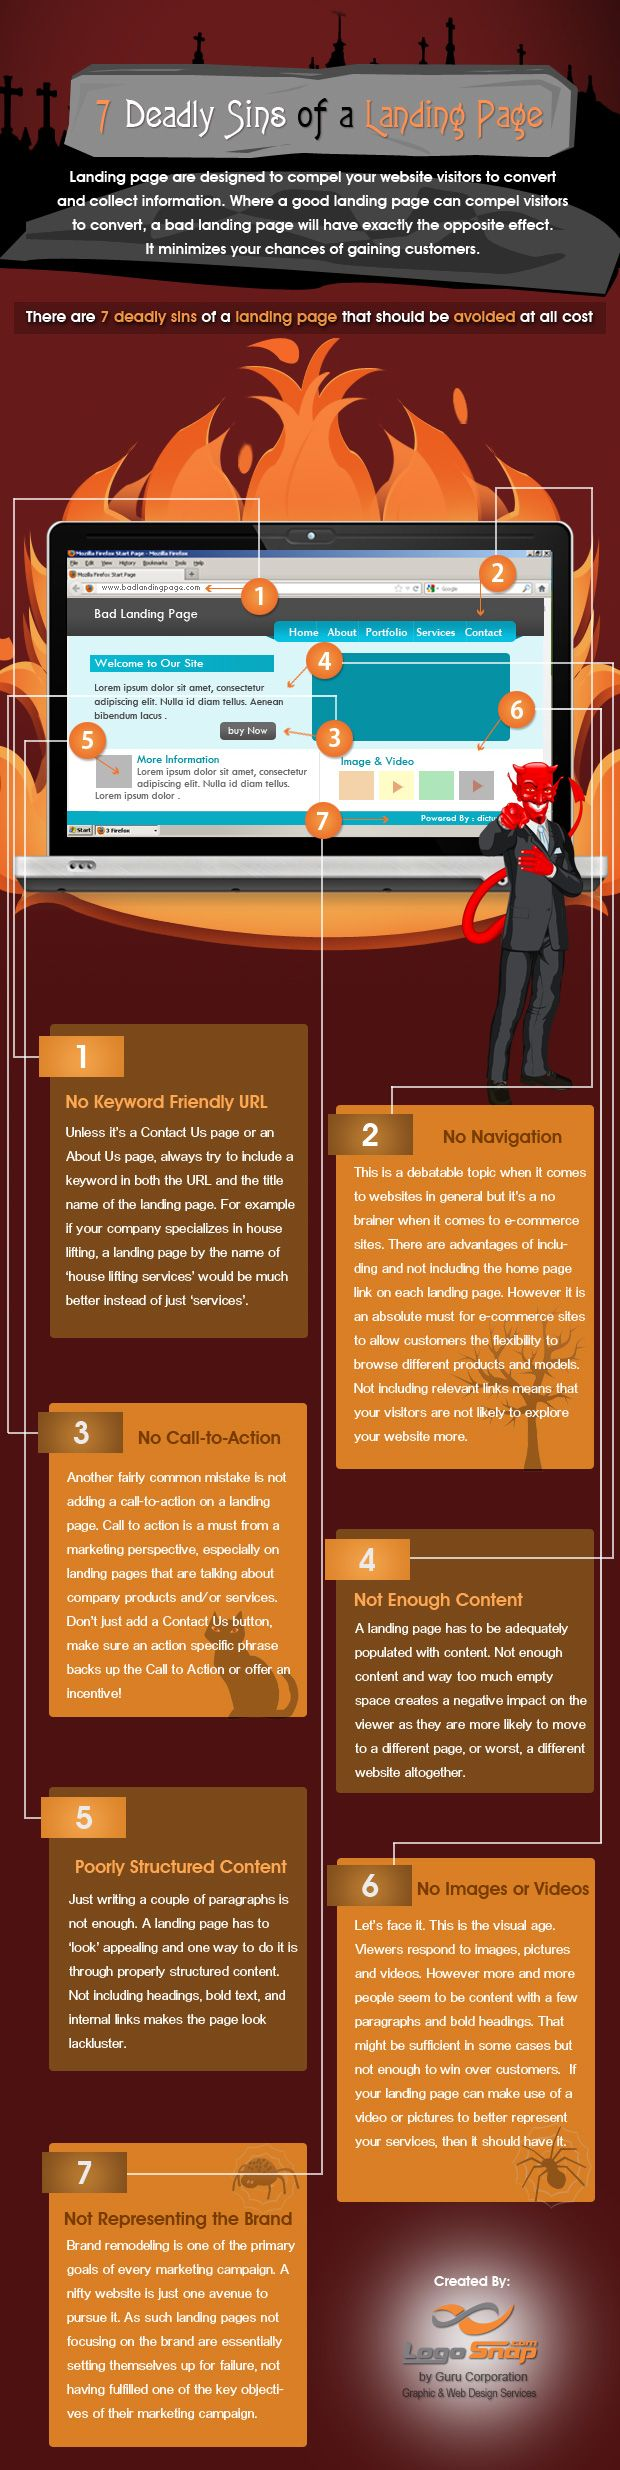 Here's an infographic that highlights the 7 deadly sins of a landing page so business owners and designers know what to avoid.